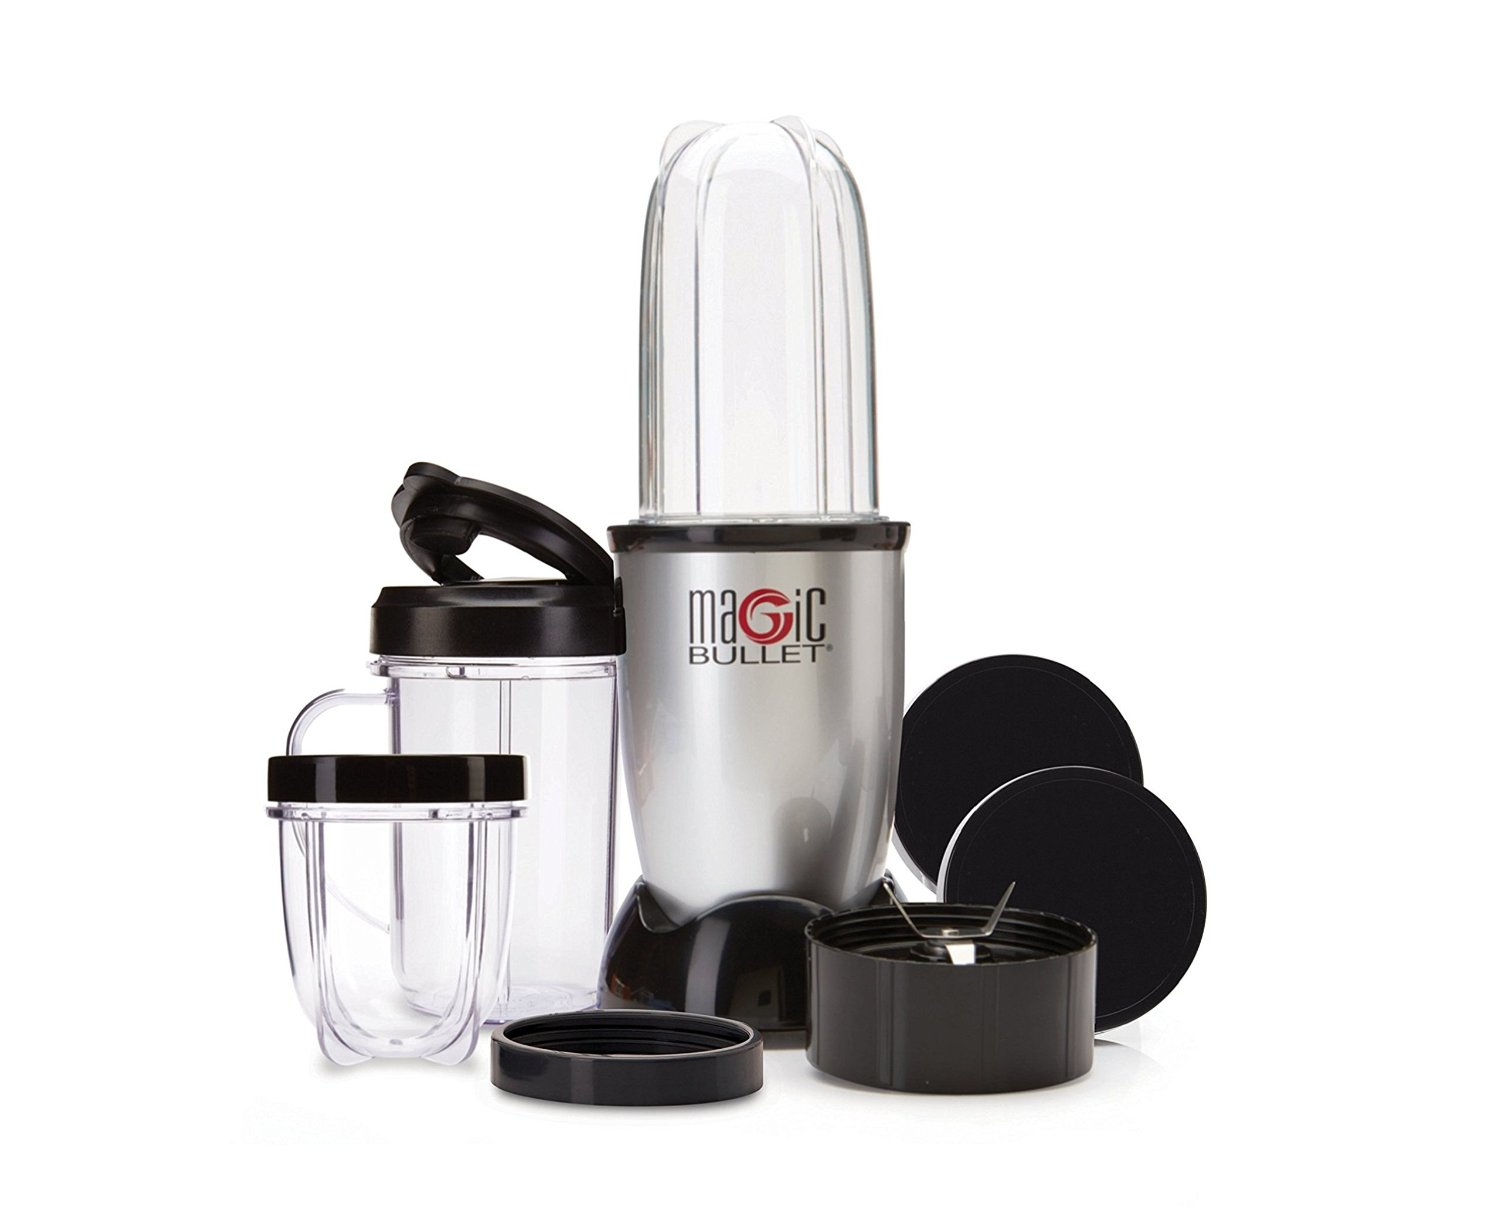 Magicbullet